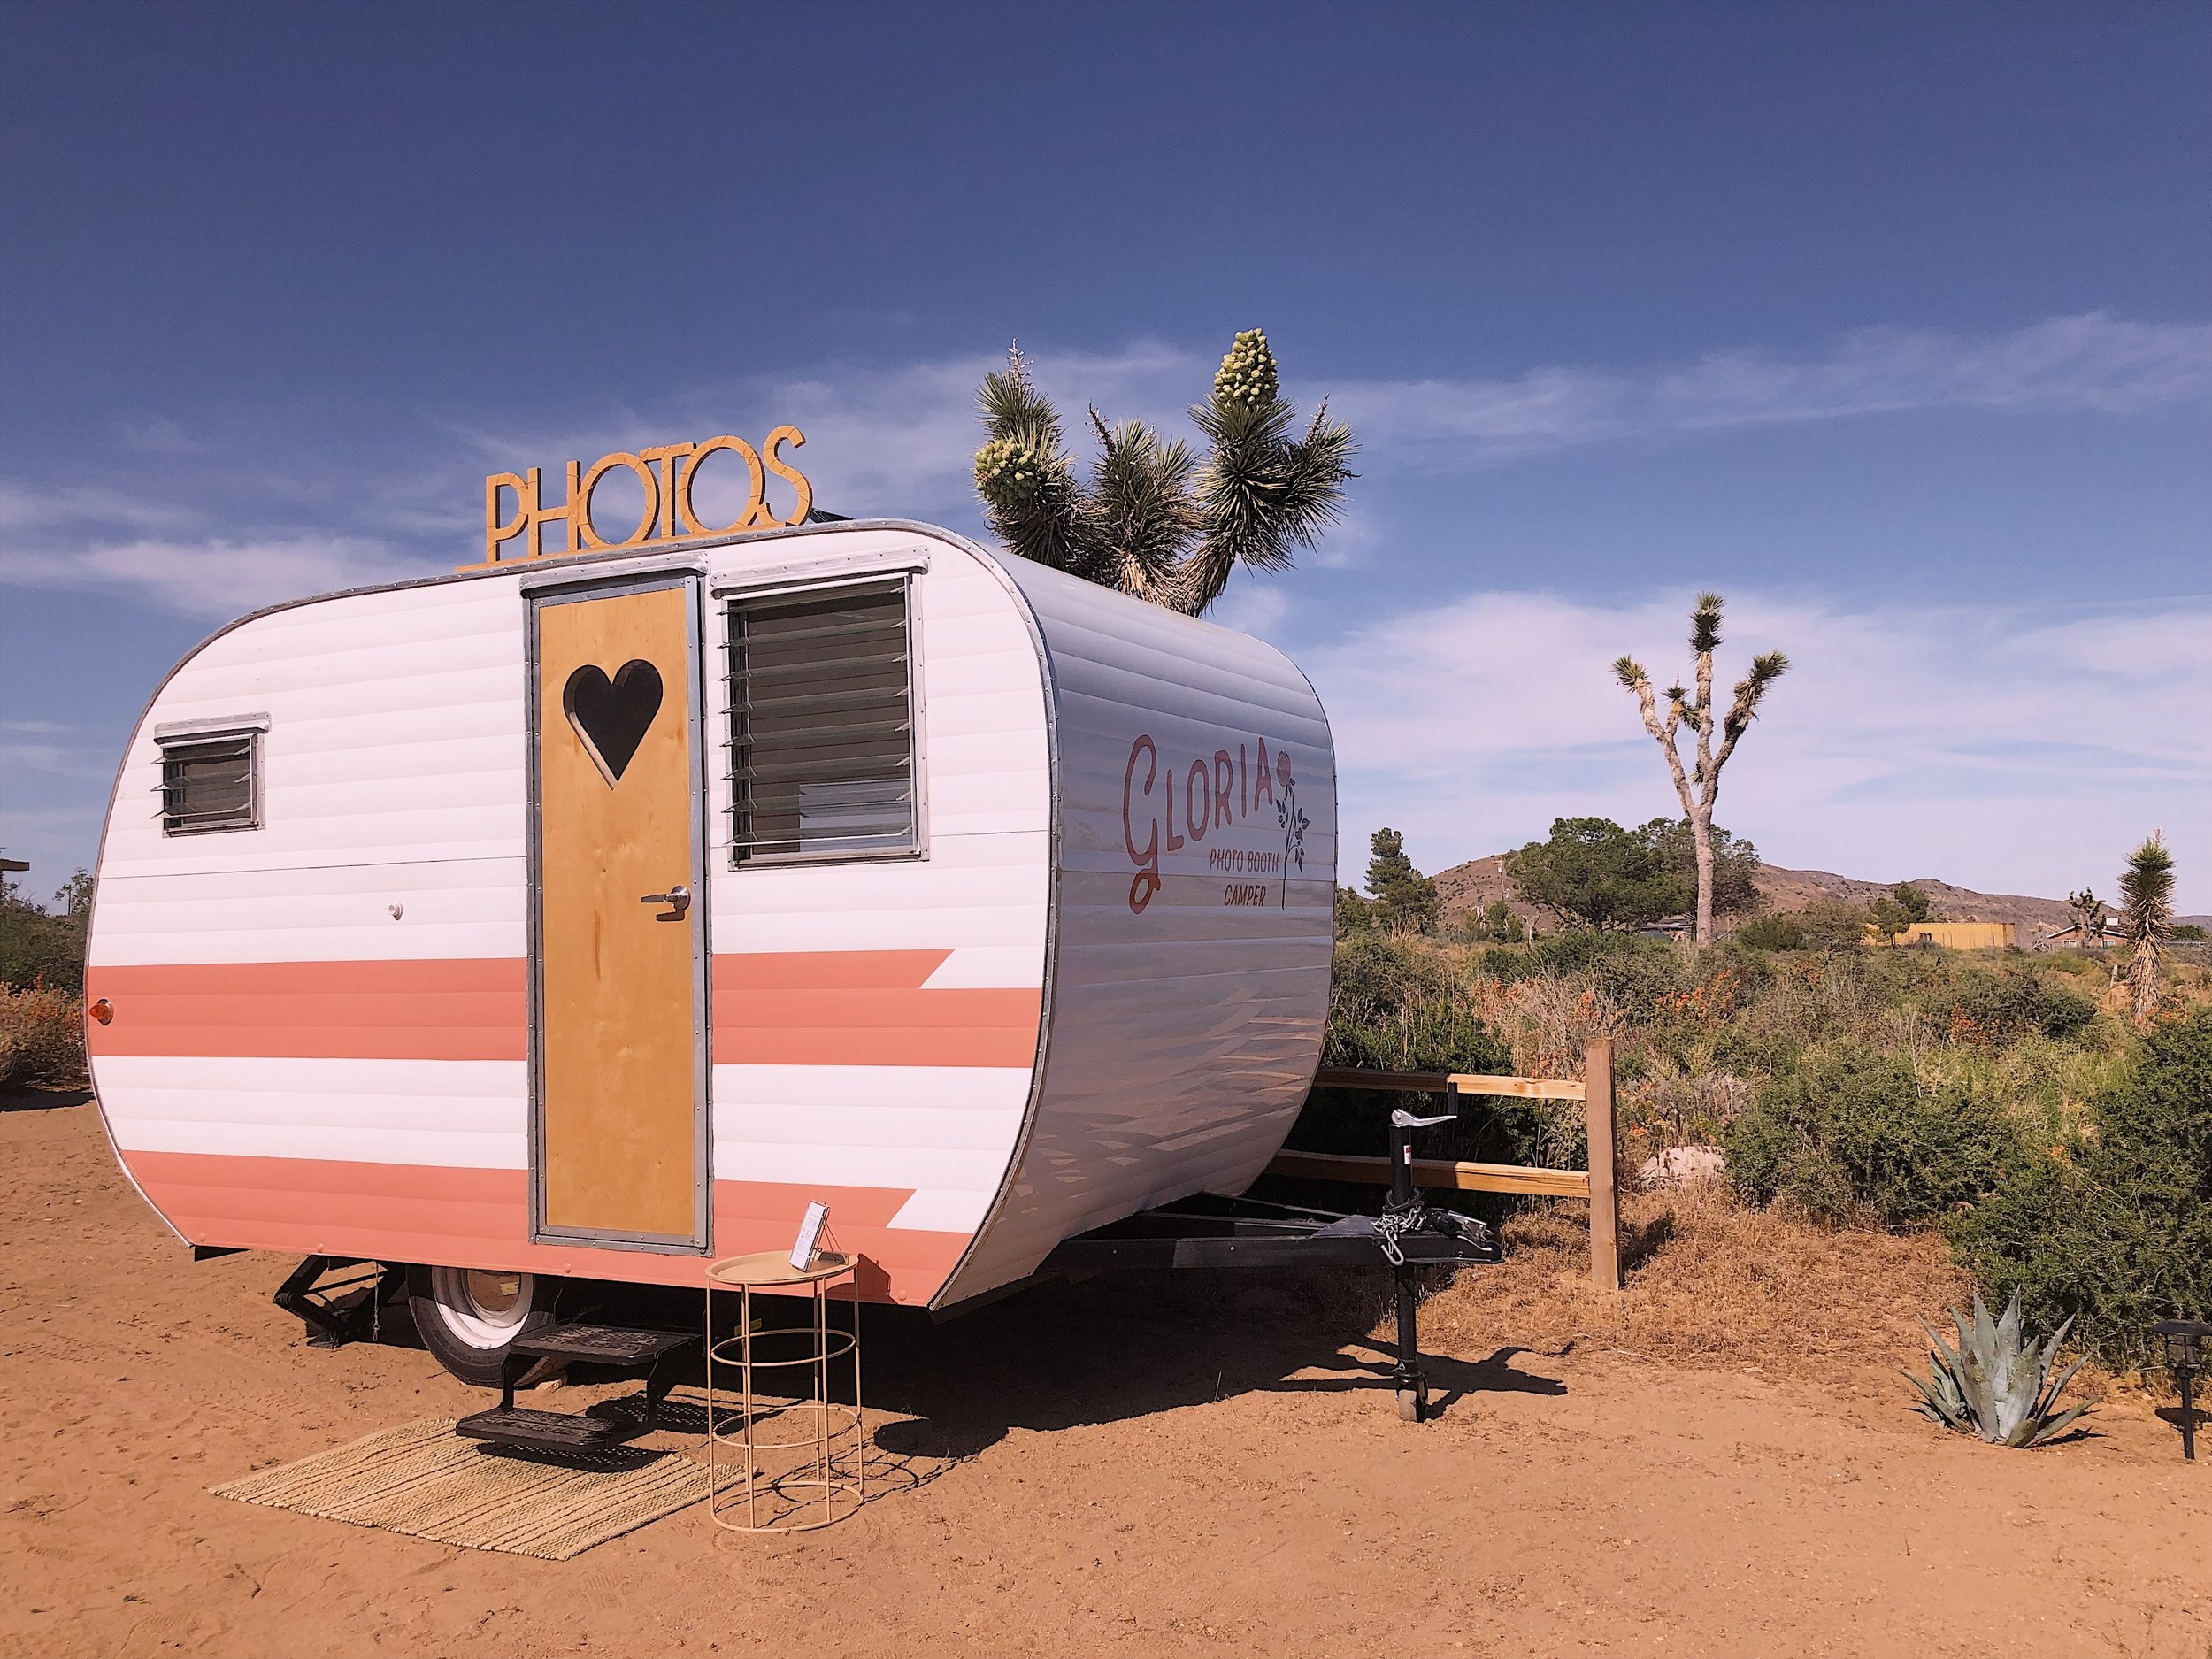 PHOTO BOOTH CAMPER JOSHUA TREE PALM SPRINGS